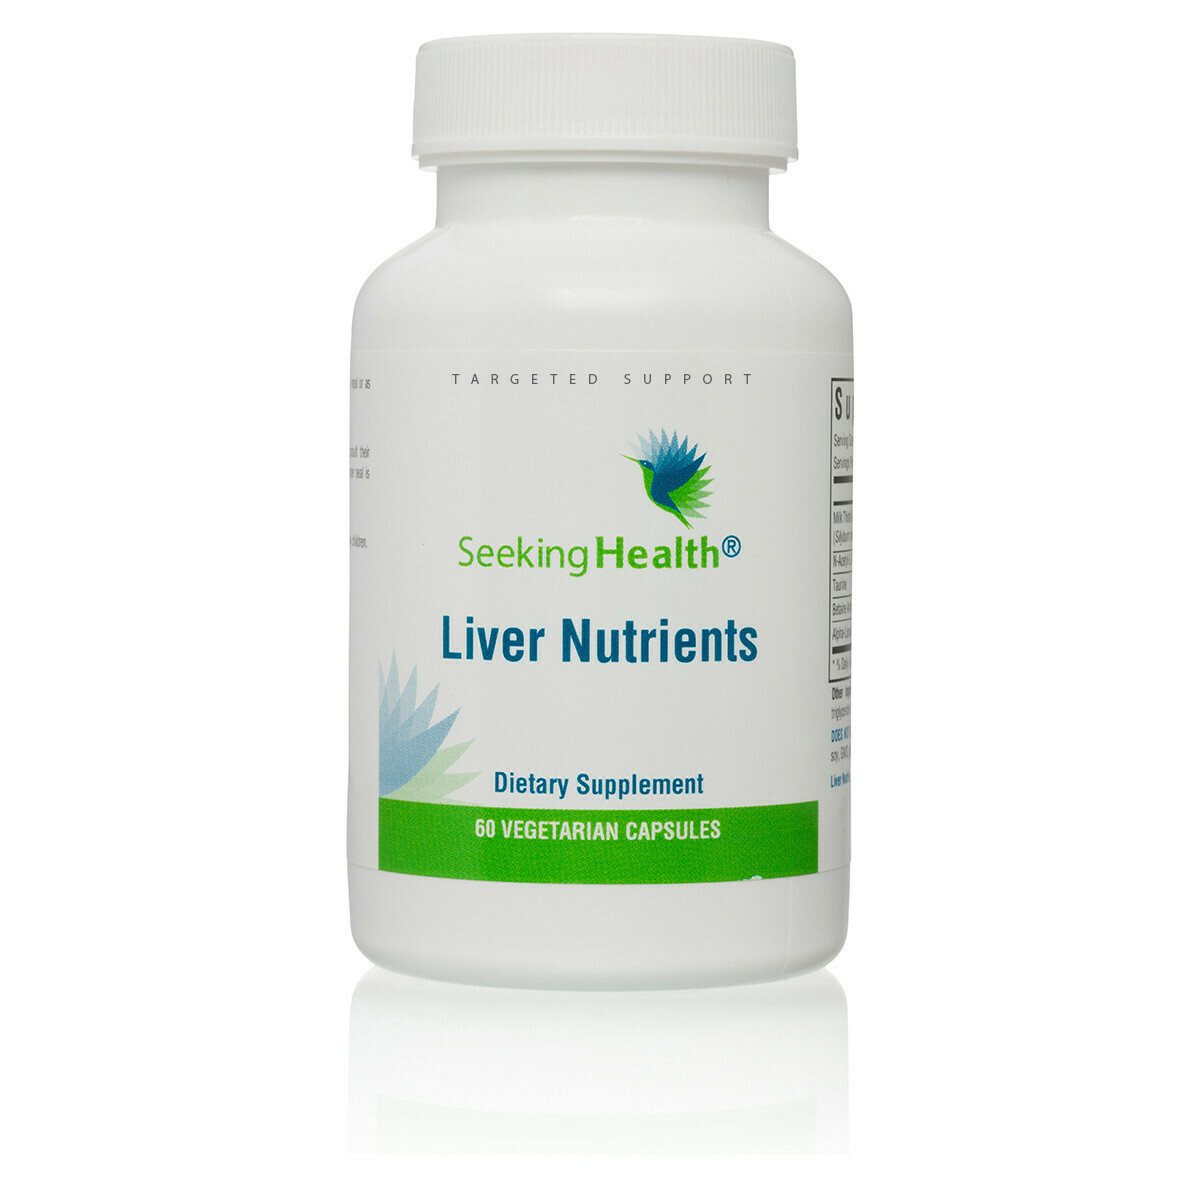 LIVER NUTRIENTS - 60 CAPSULES Seeking Health